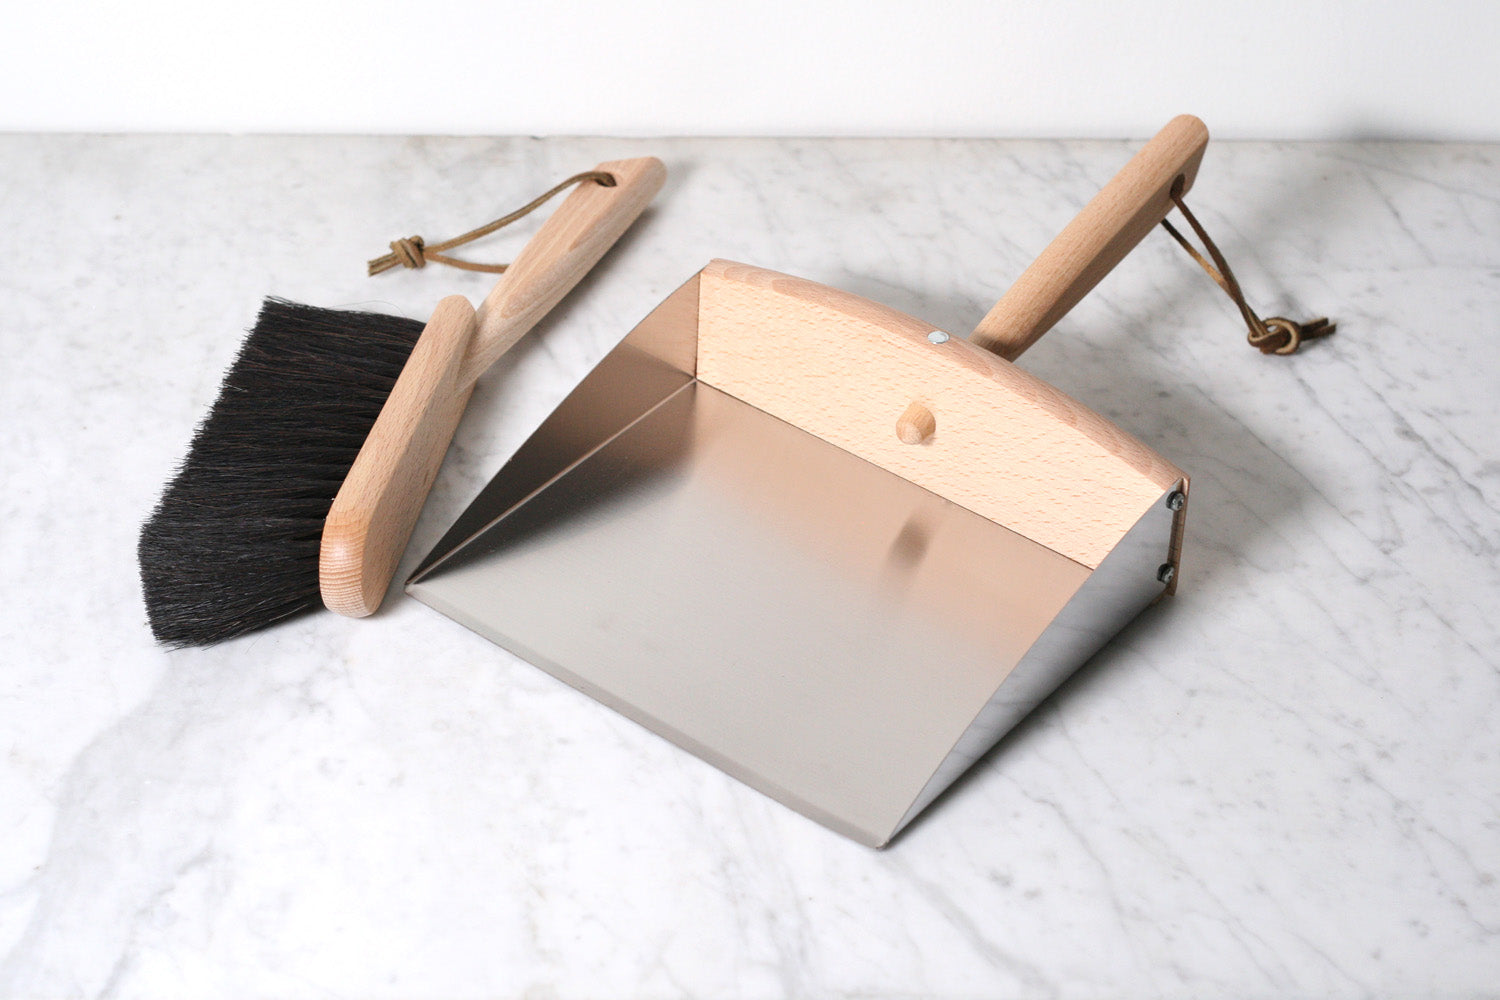 Burstenhaus Redecker Dustpan and Dust Brush with Magnet